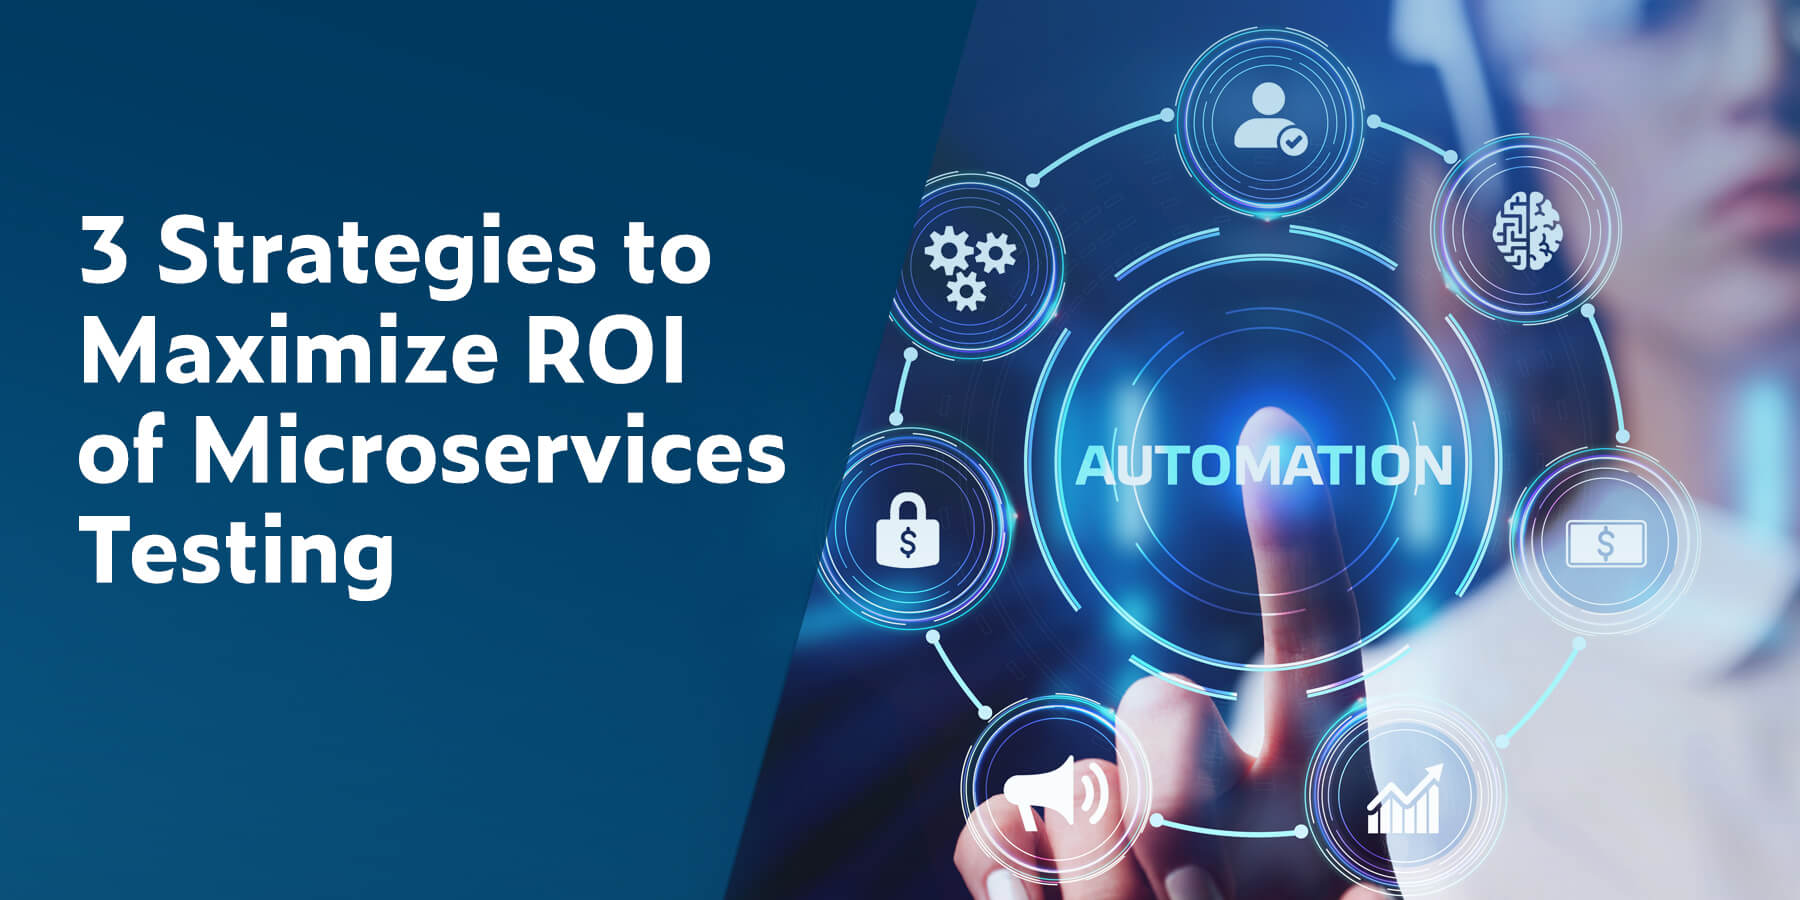 3 Strategies to Maximize ROI of Microservices Testing